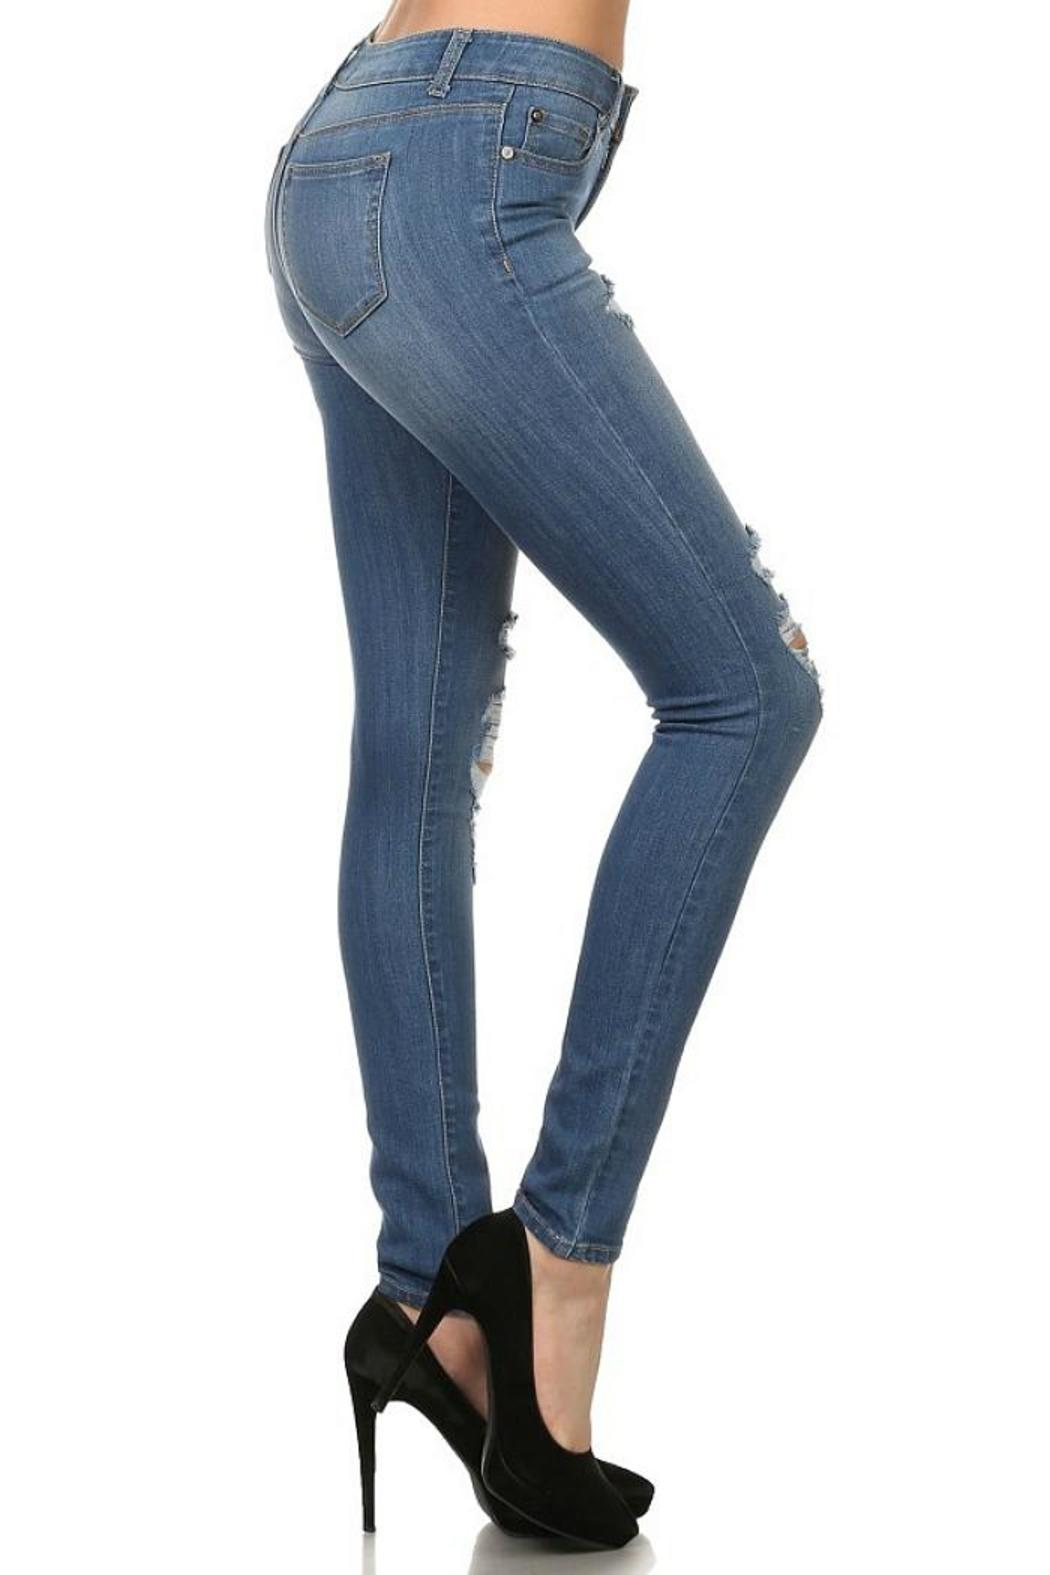 ENJean Holey Moley Skinnies - Side Cropped Image